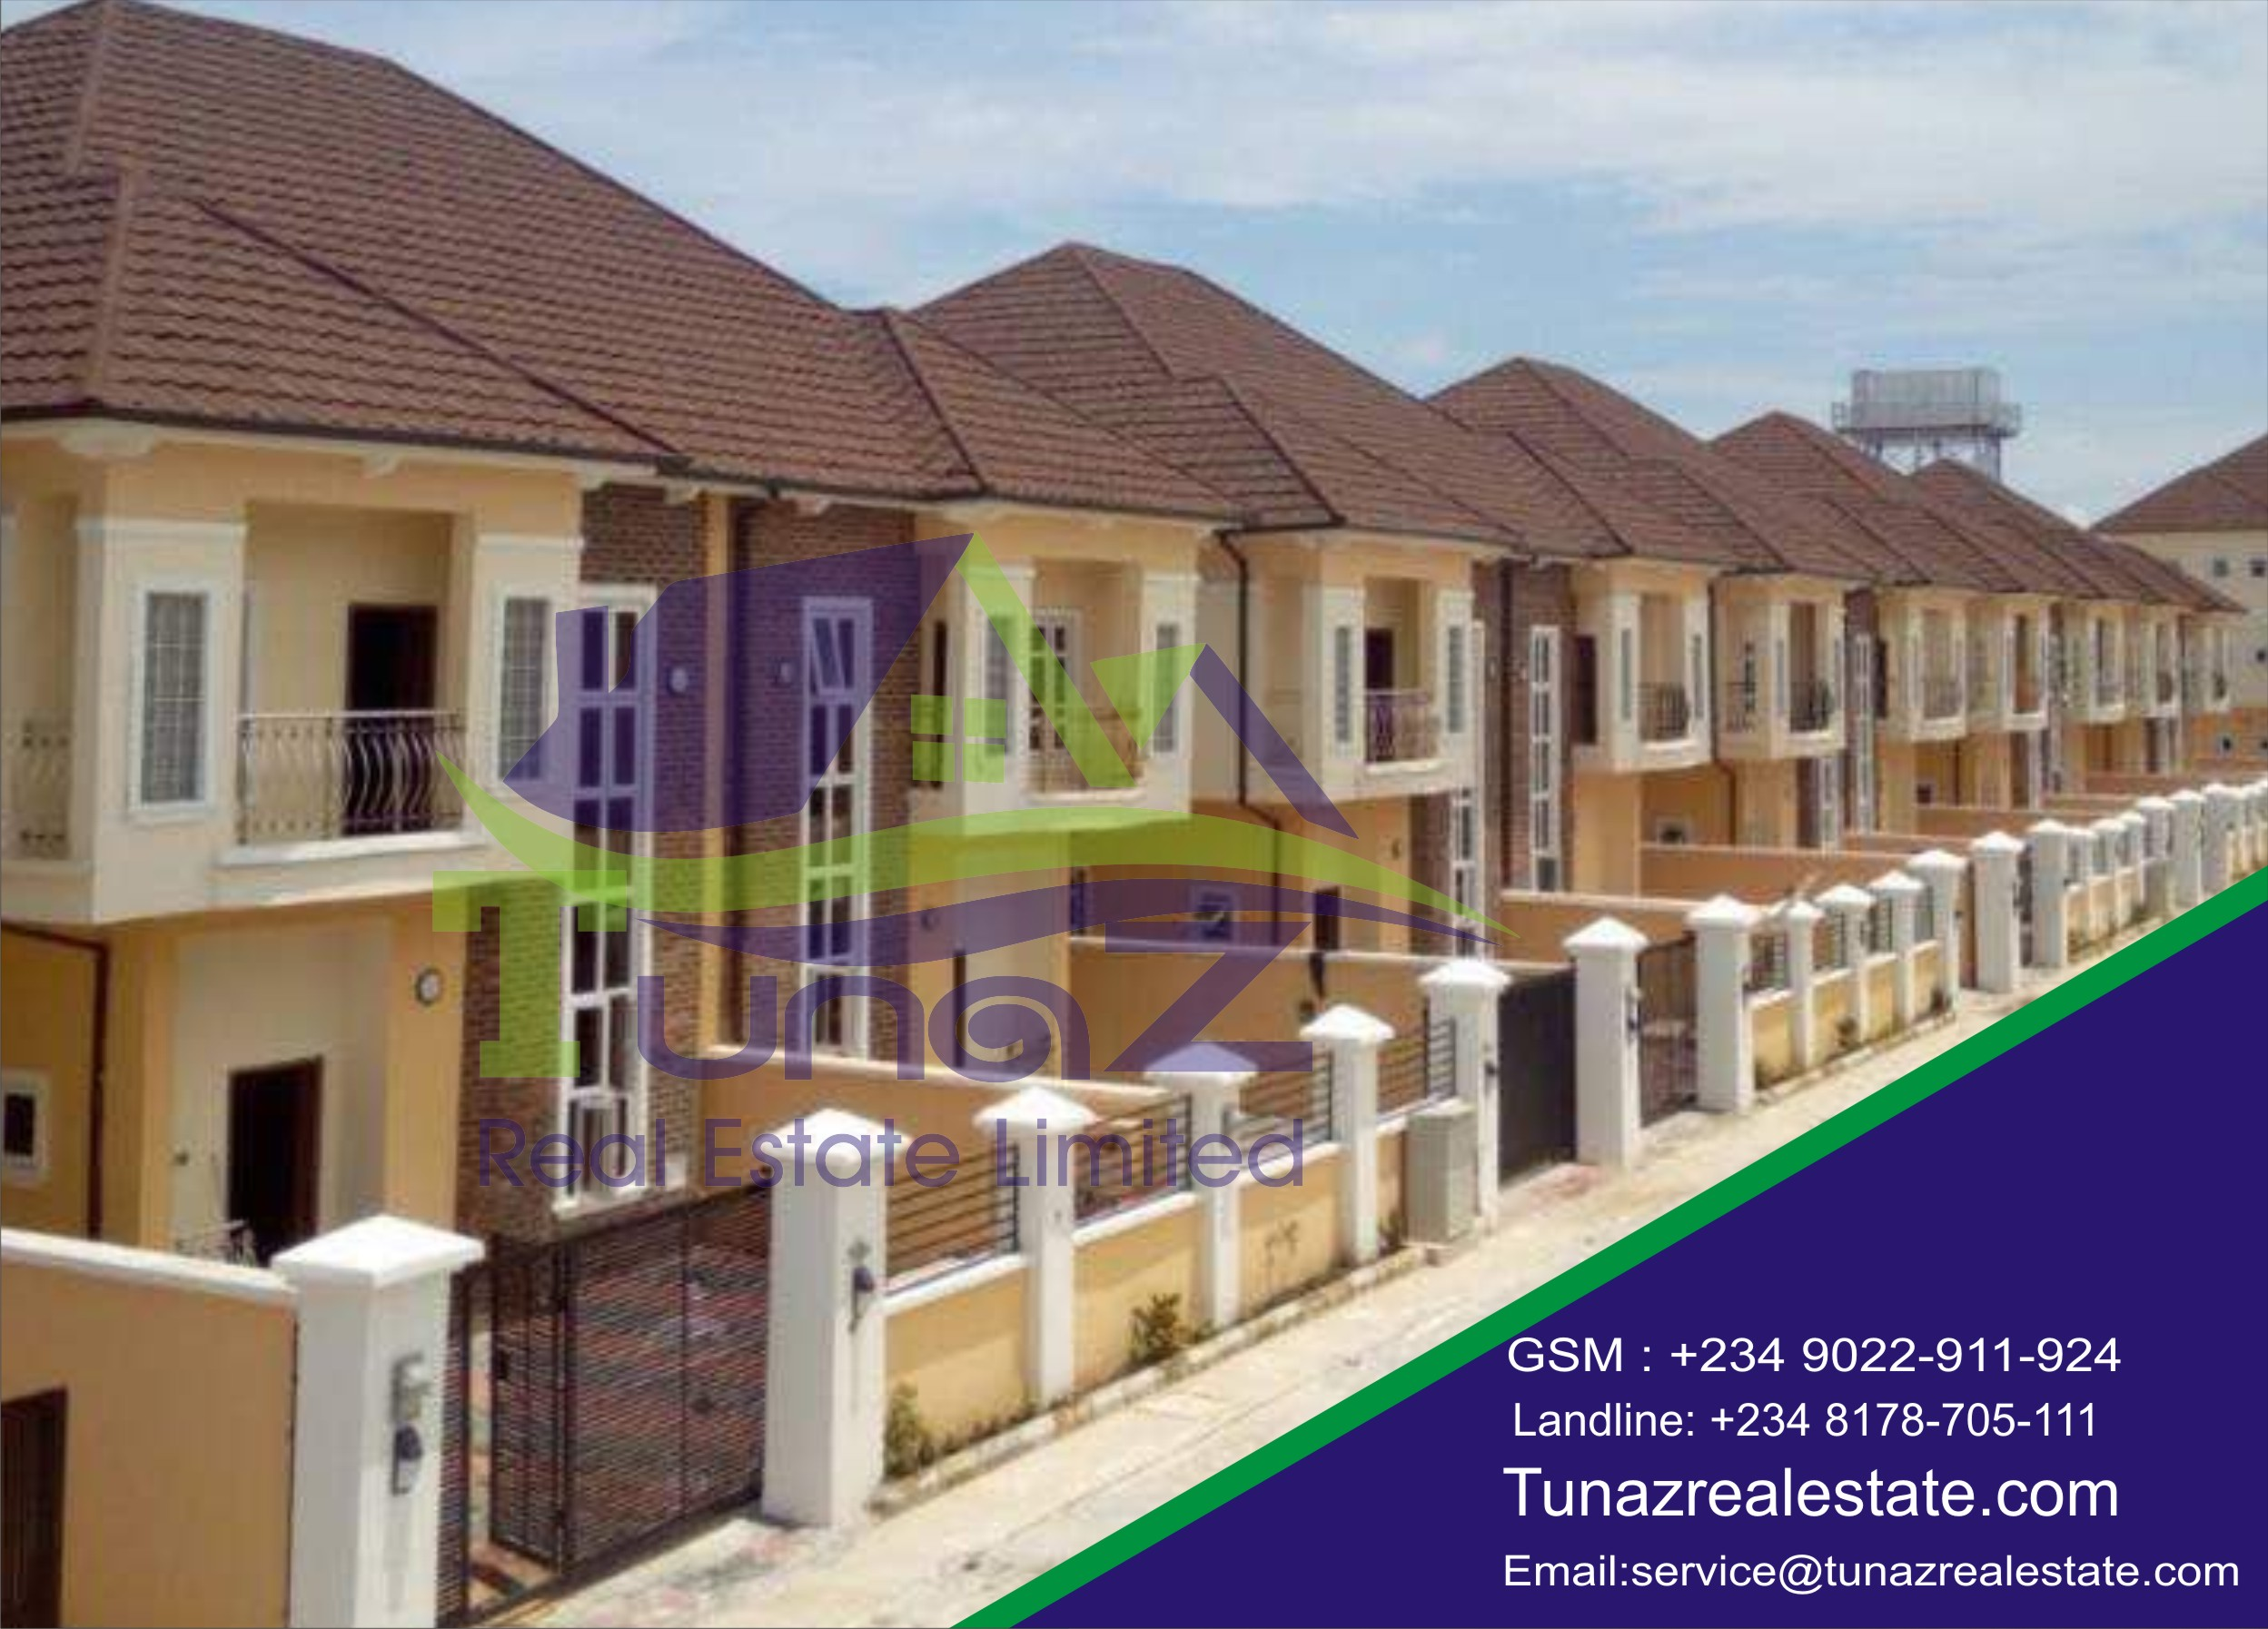 Estate Comprises Of 5 Bedroom, 4 Bedroom And 2 Bedroom Duplexes With All Rooms Ensuite For Sale